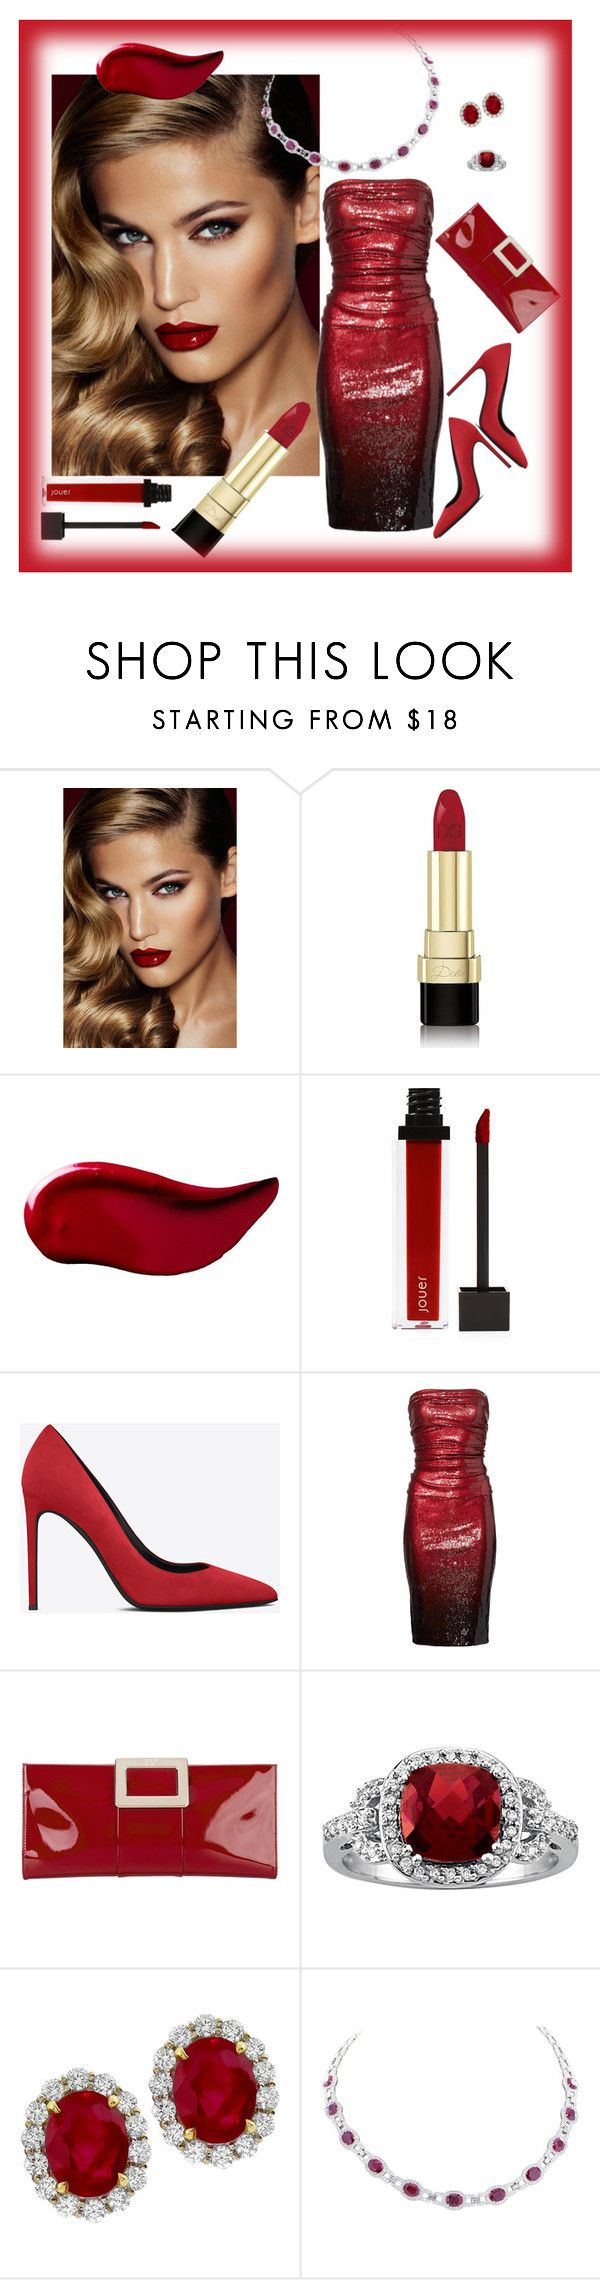 """""""Diamonds, Rubies and Red Hot Lips!"""" by nicole-trail ❤ liked on Polyvore featuring beauty, Charlotte Tilbury, Dolce&Gabbana, Kat Von D, Jouer, Yves Saint Laurent, Donna Karan and Roger Vivier"""